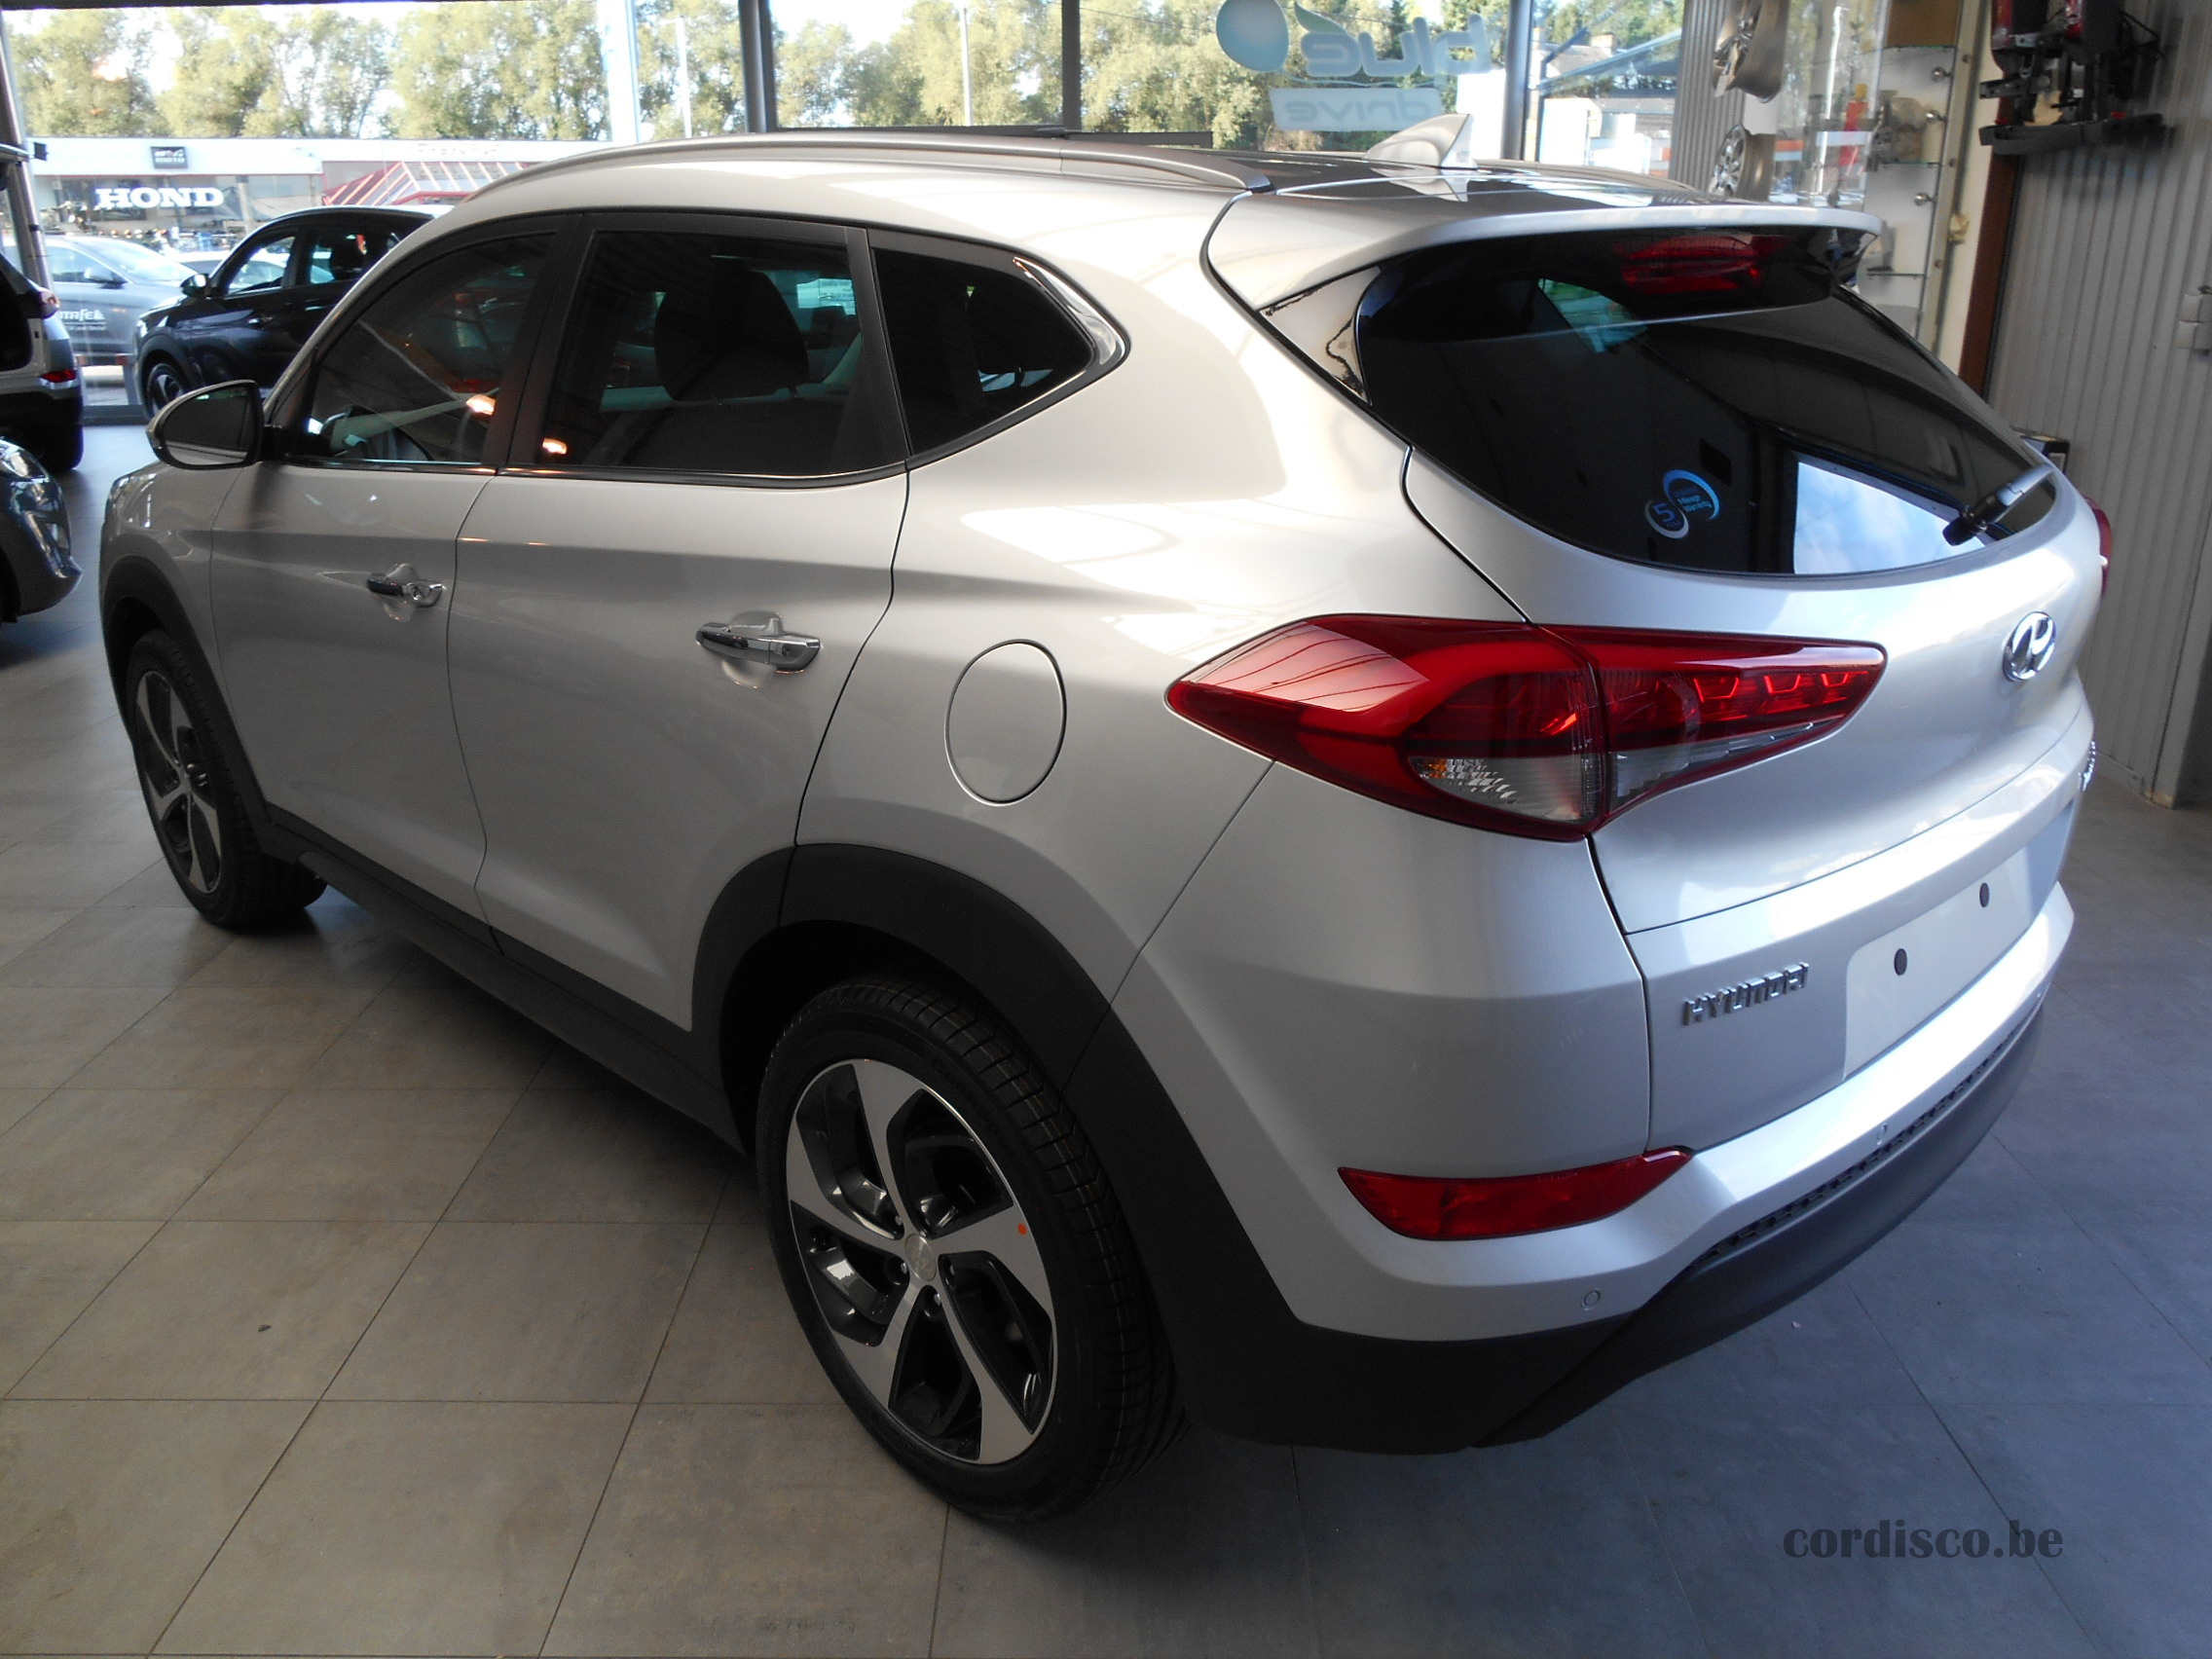 Hyundai tucson garage cordisco for Garage hyundai francheville